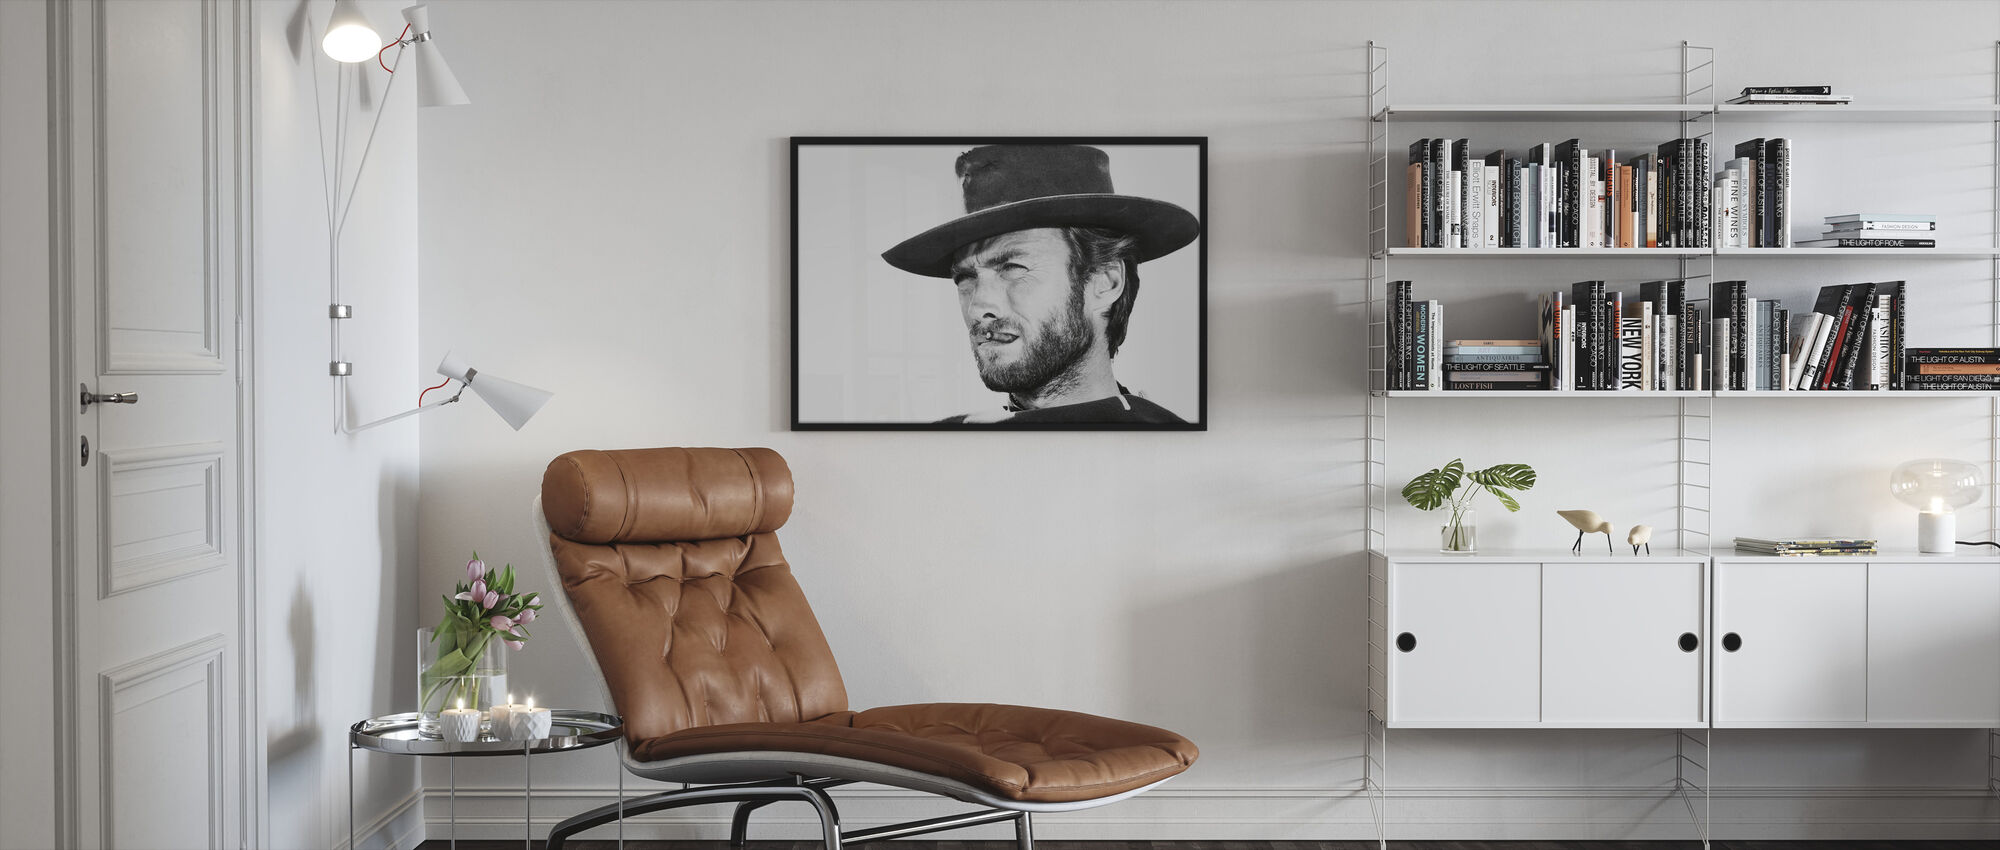 Clint Eastwood in Good the Bad and the Ugly - Framed print - Living Room